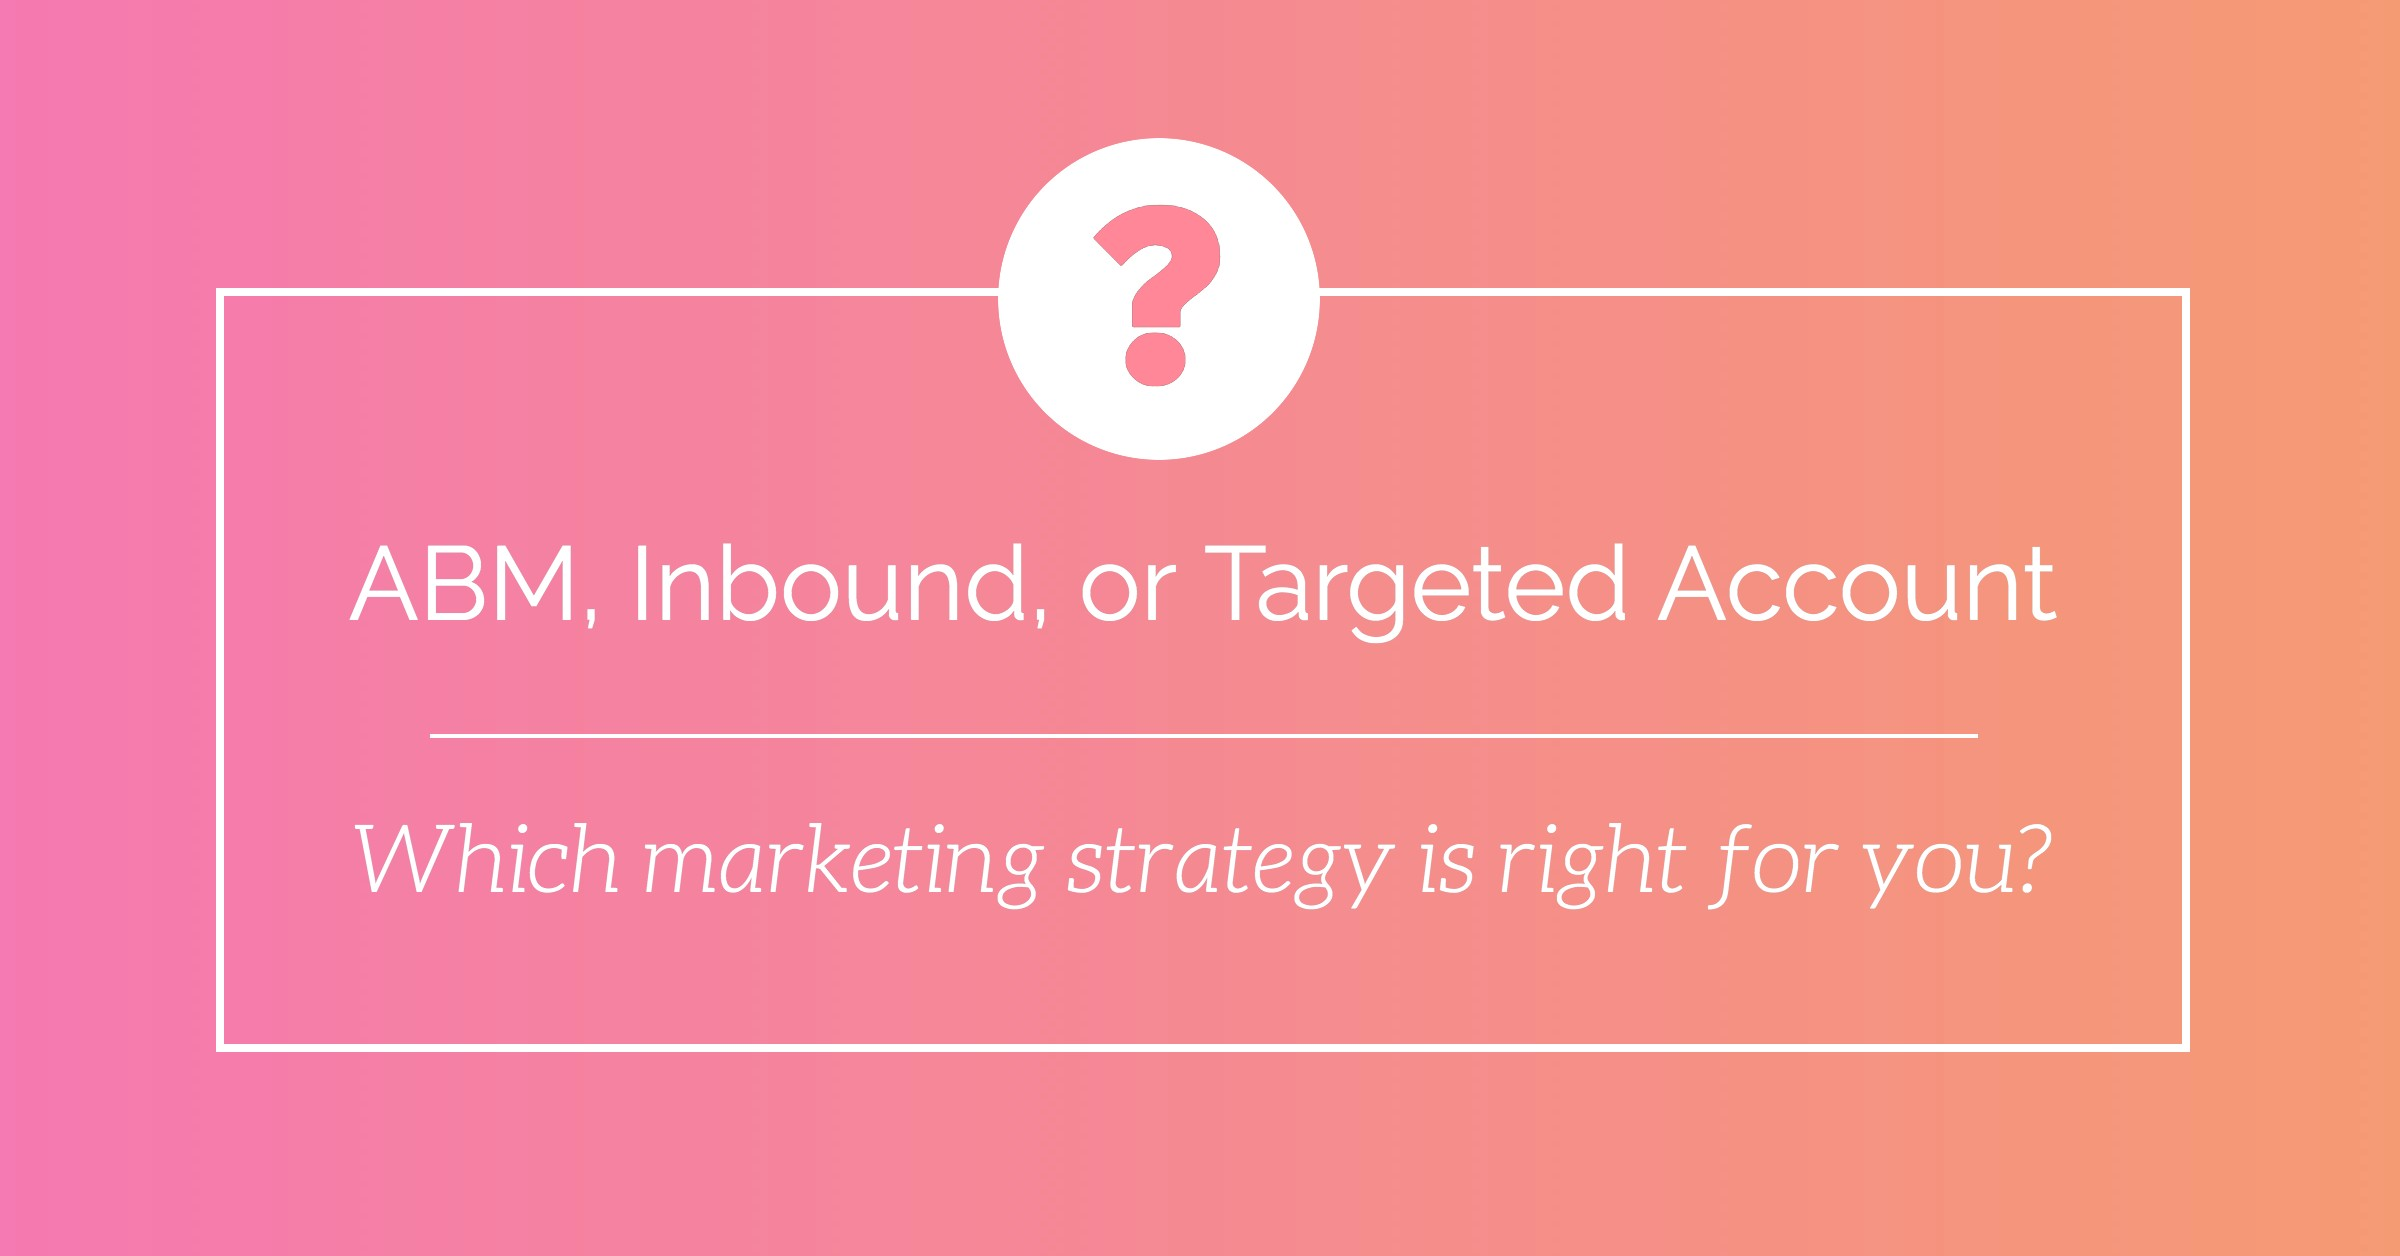 ABM, Inbound, Targeted Account: Which marketing strategy is right for you?